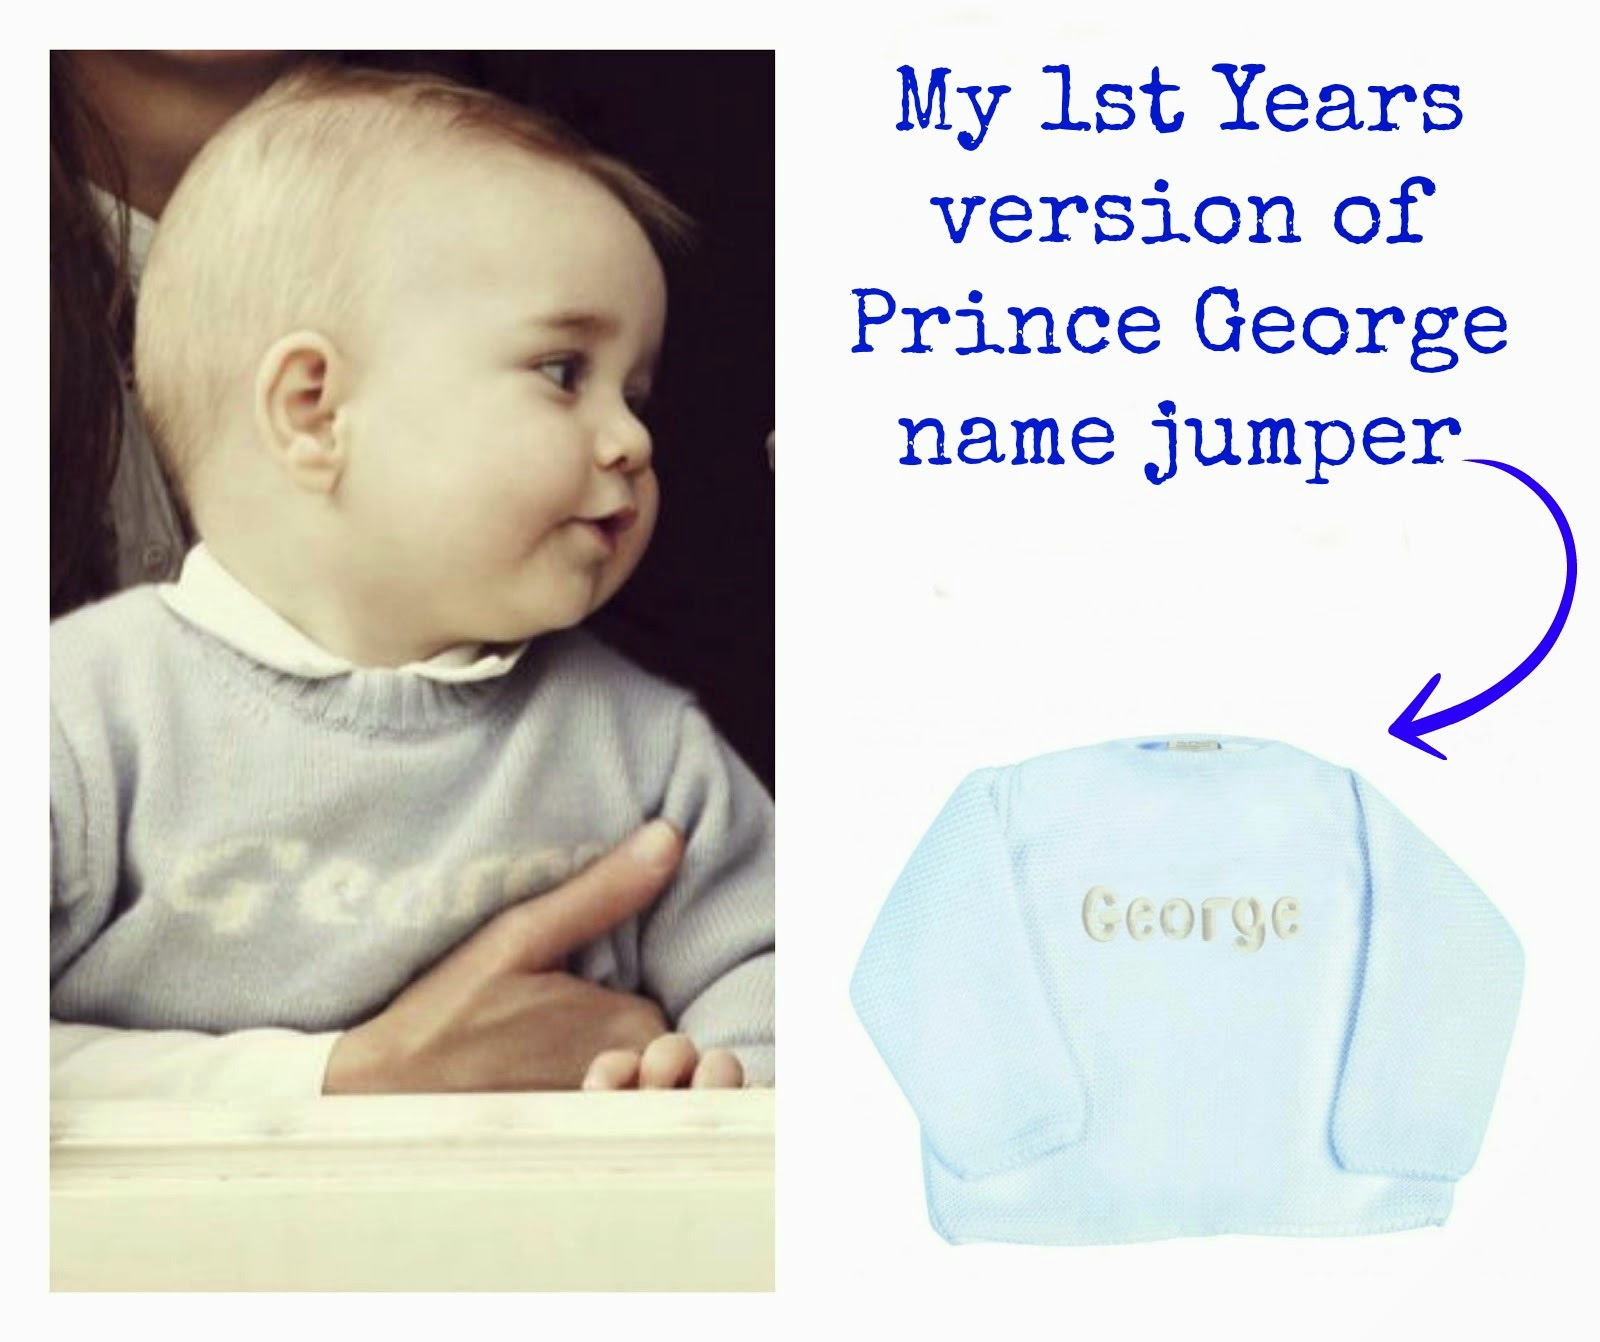 Have you heard of My 1st Years? | gifts | prince george jumper | personalised gifts | dressing gown for toddlers | gift ideas | baby gifts | new baby gifts | unique gift ideas | my first years | mamasVIB | personalised kids clothes | 1st birthday gifts | engraved | personal | kids | gifts | my first years |